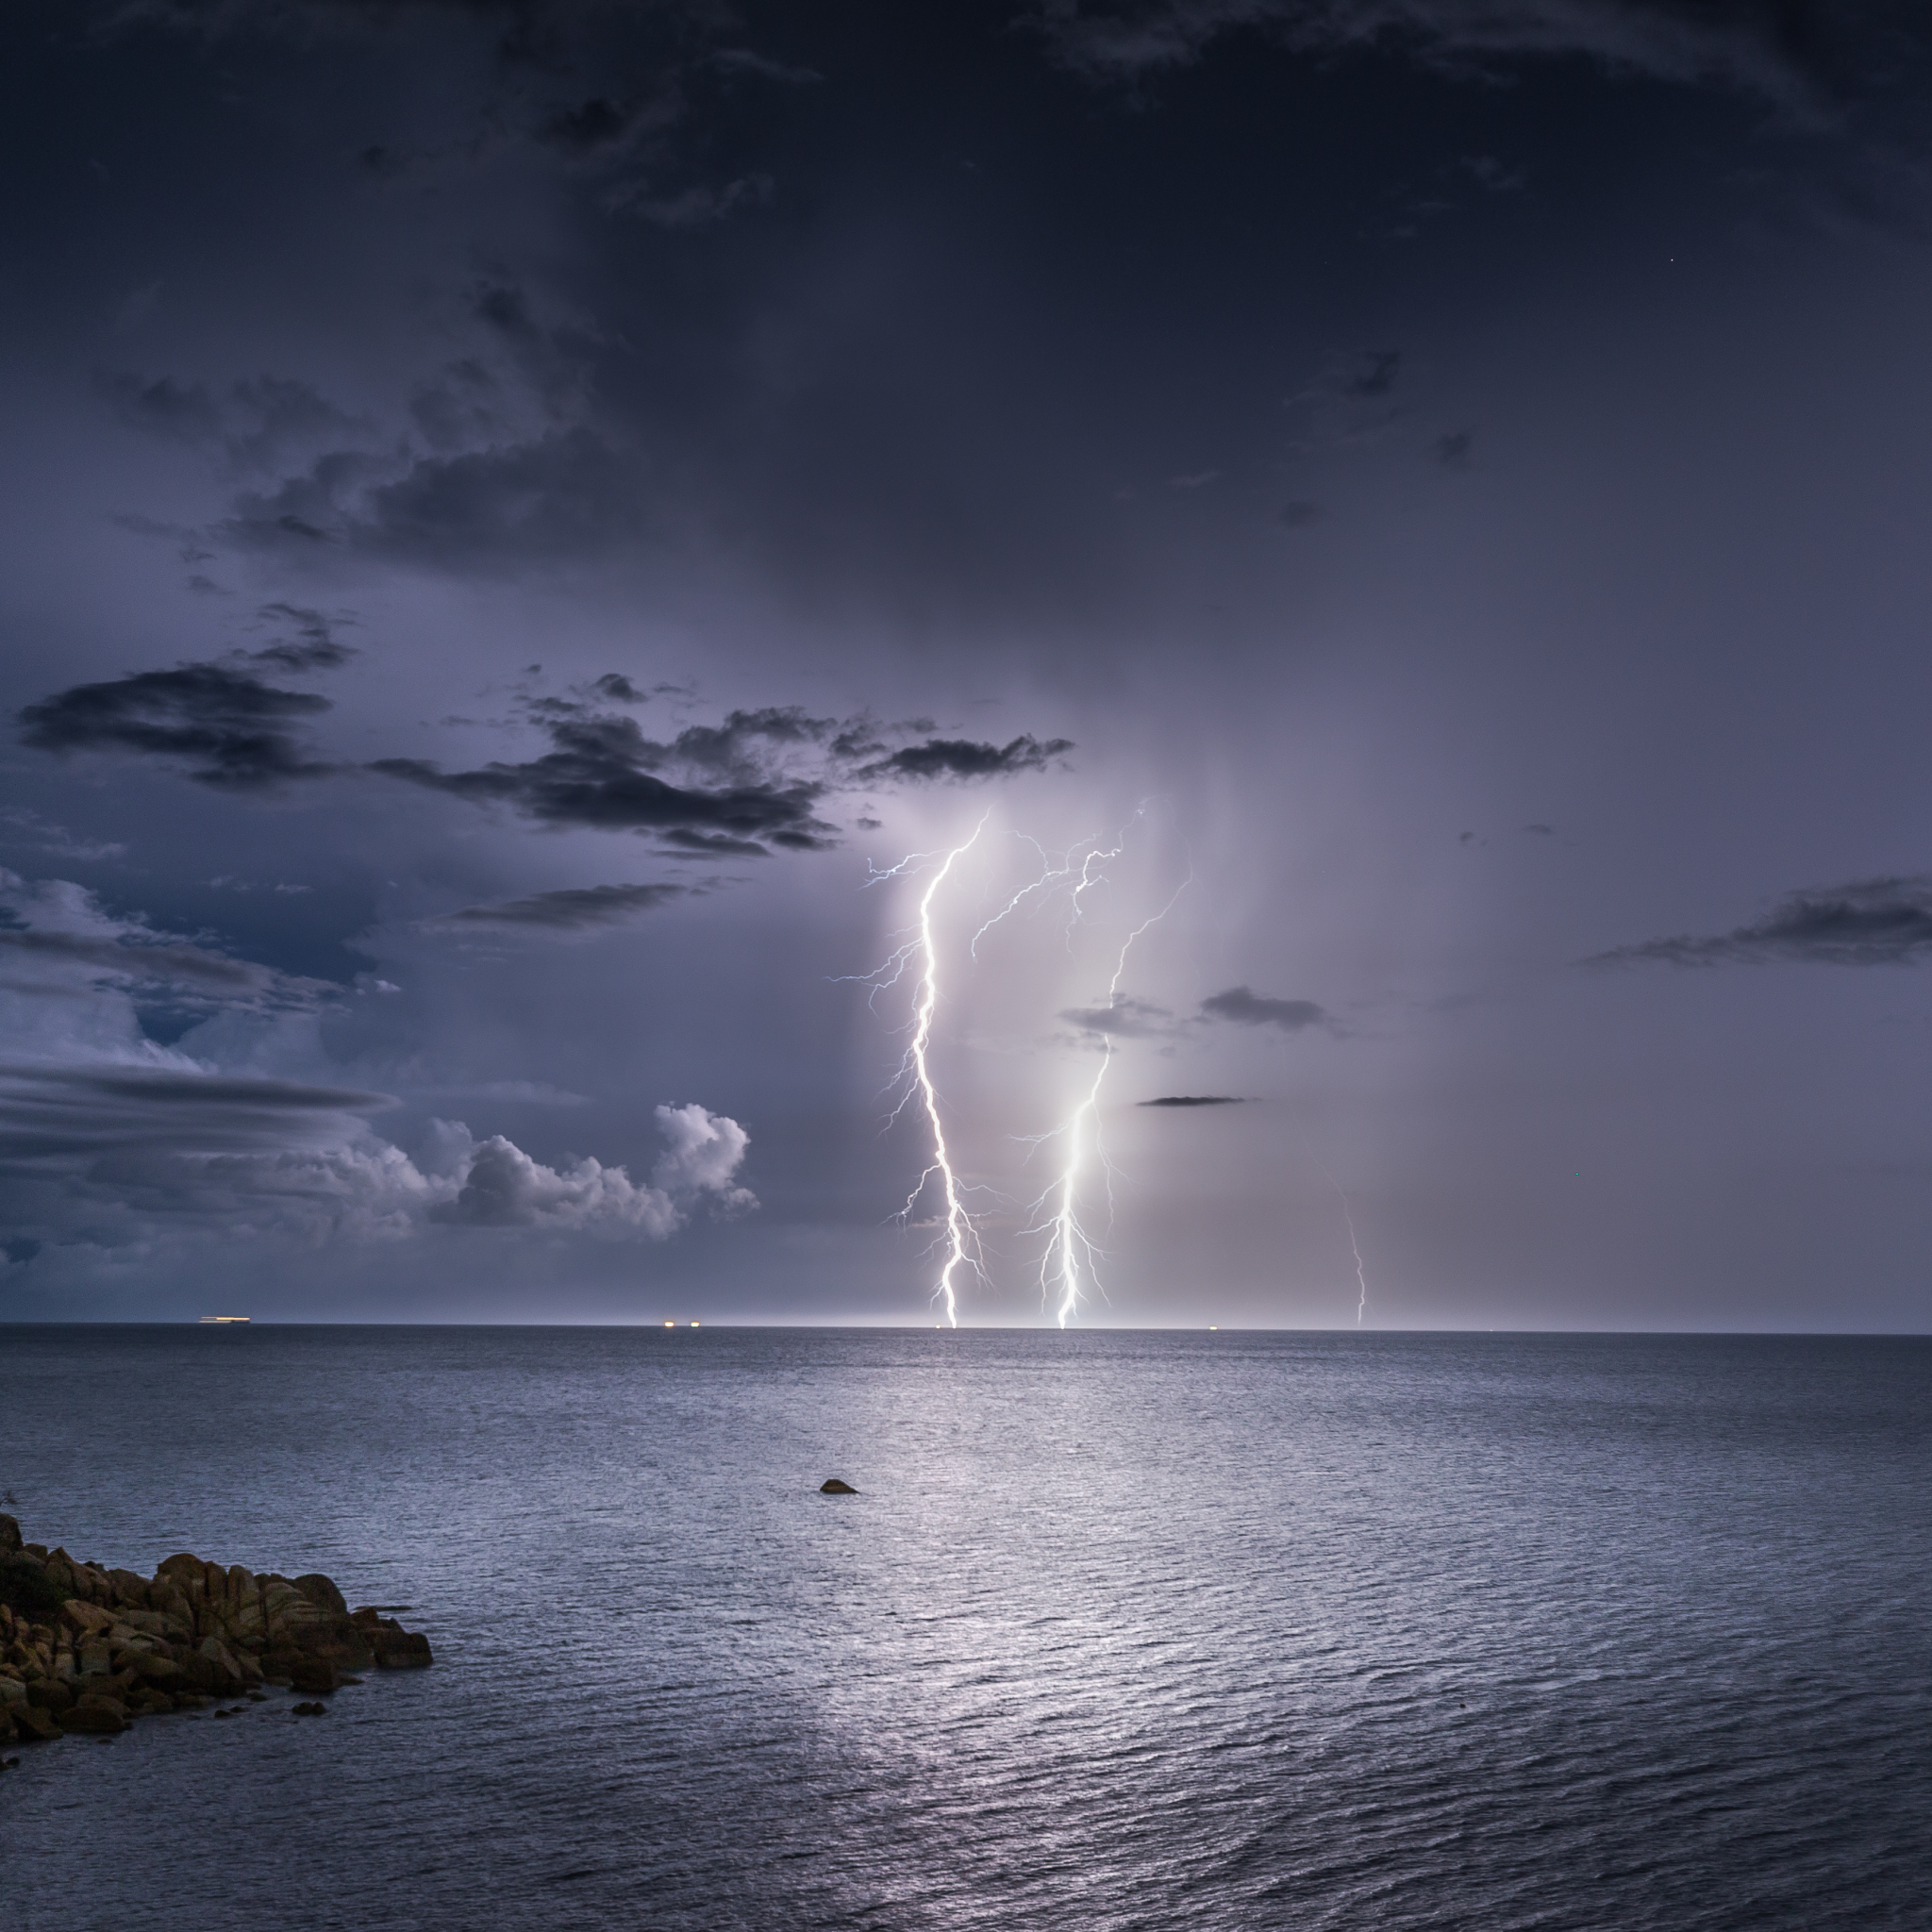 photography/lightning (2048x2048) wallpaper id: 642406 - mobile abyss